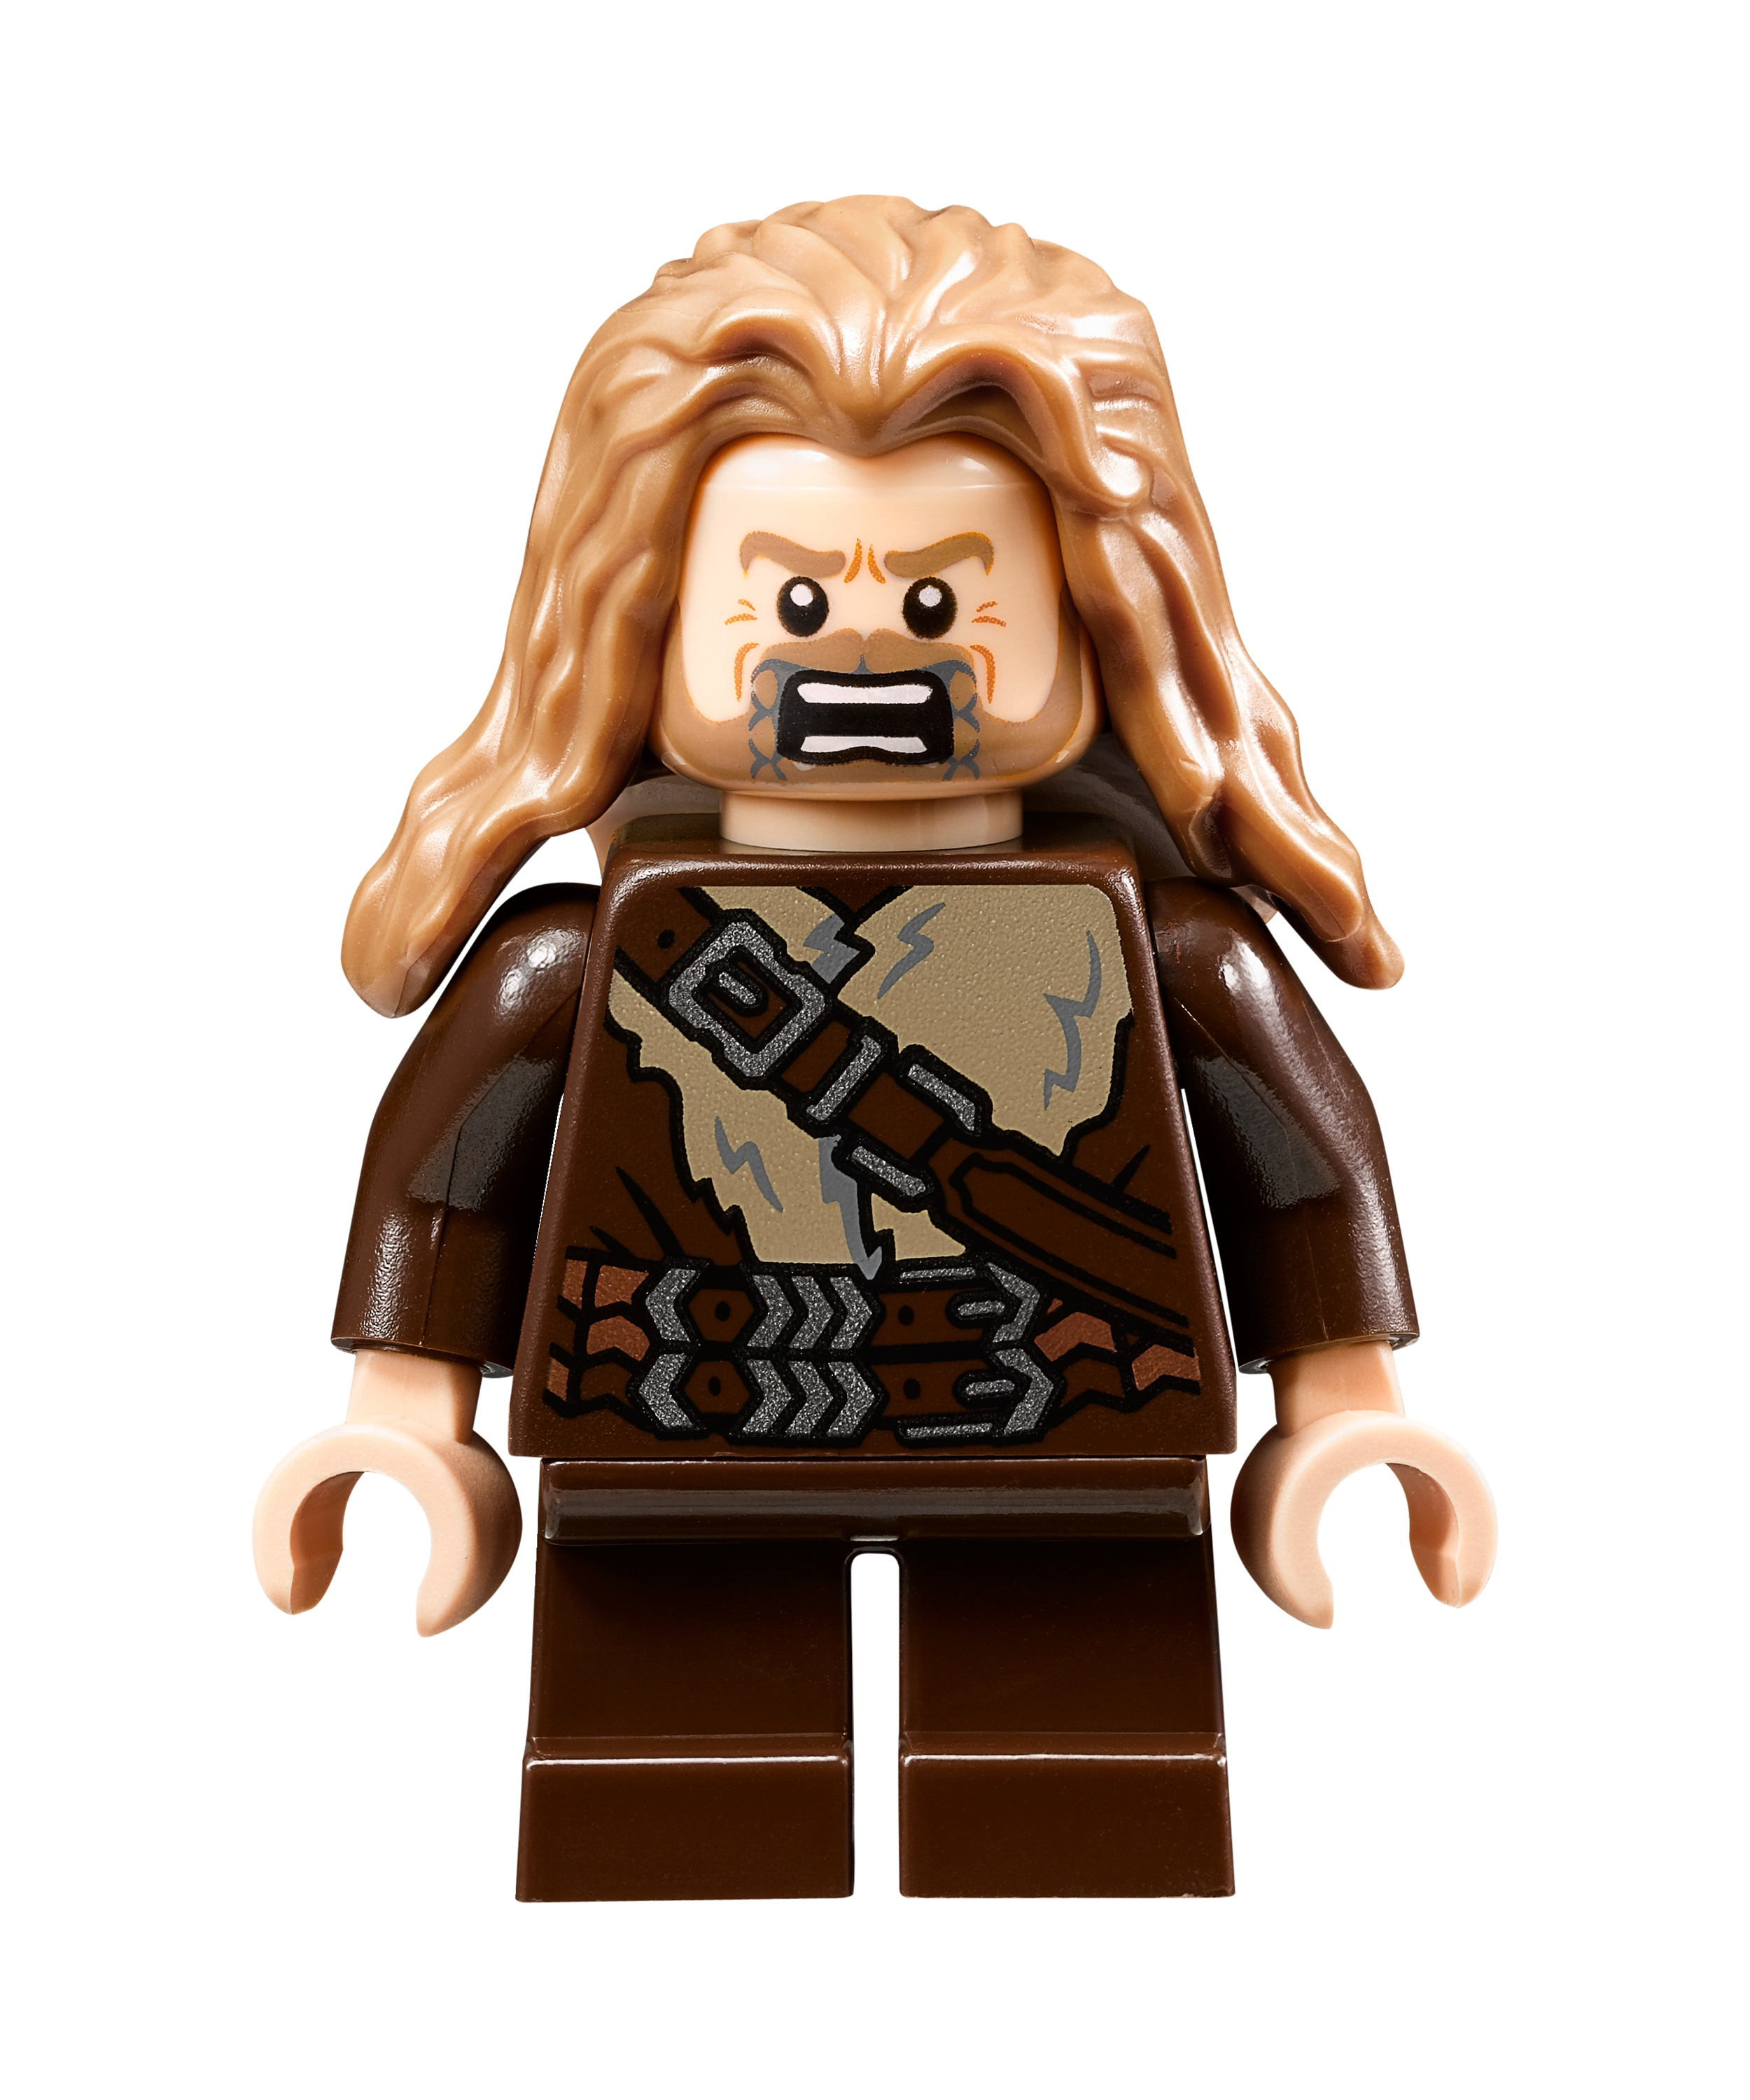 o_79001_fili_the_dwarf.jpg